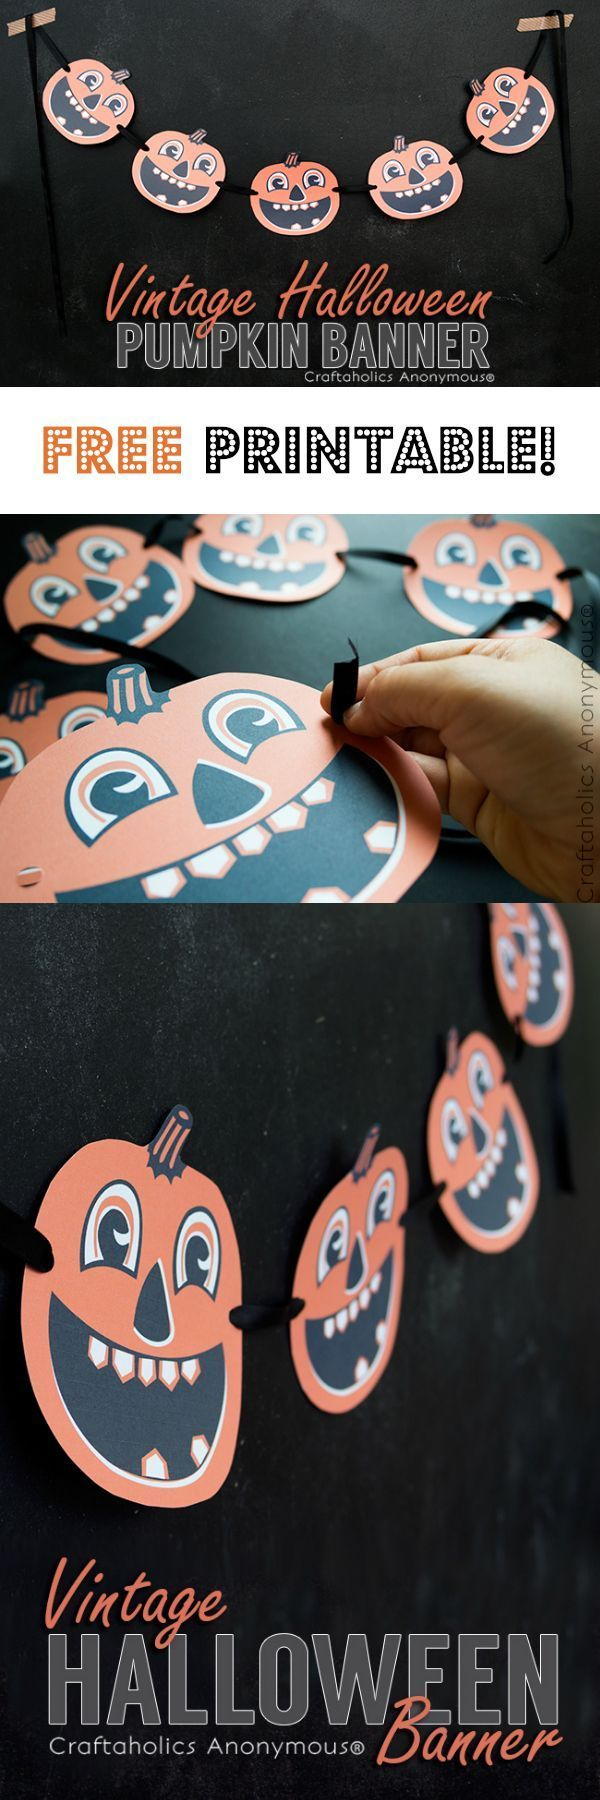 Thats right halloween crafts are here. DIY decor for your home this year.